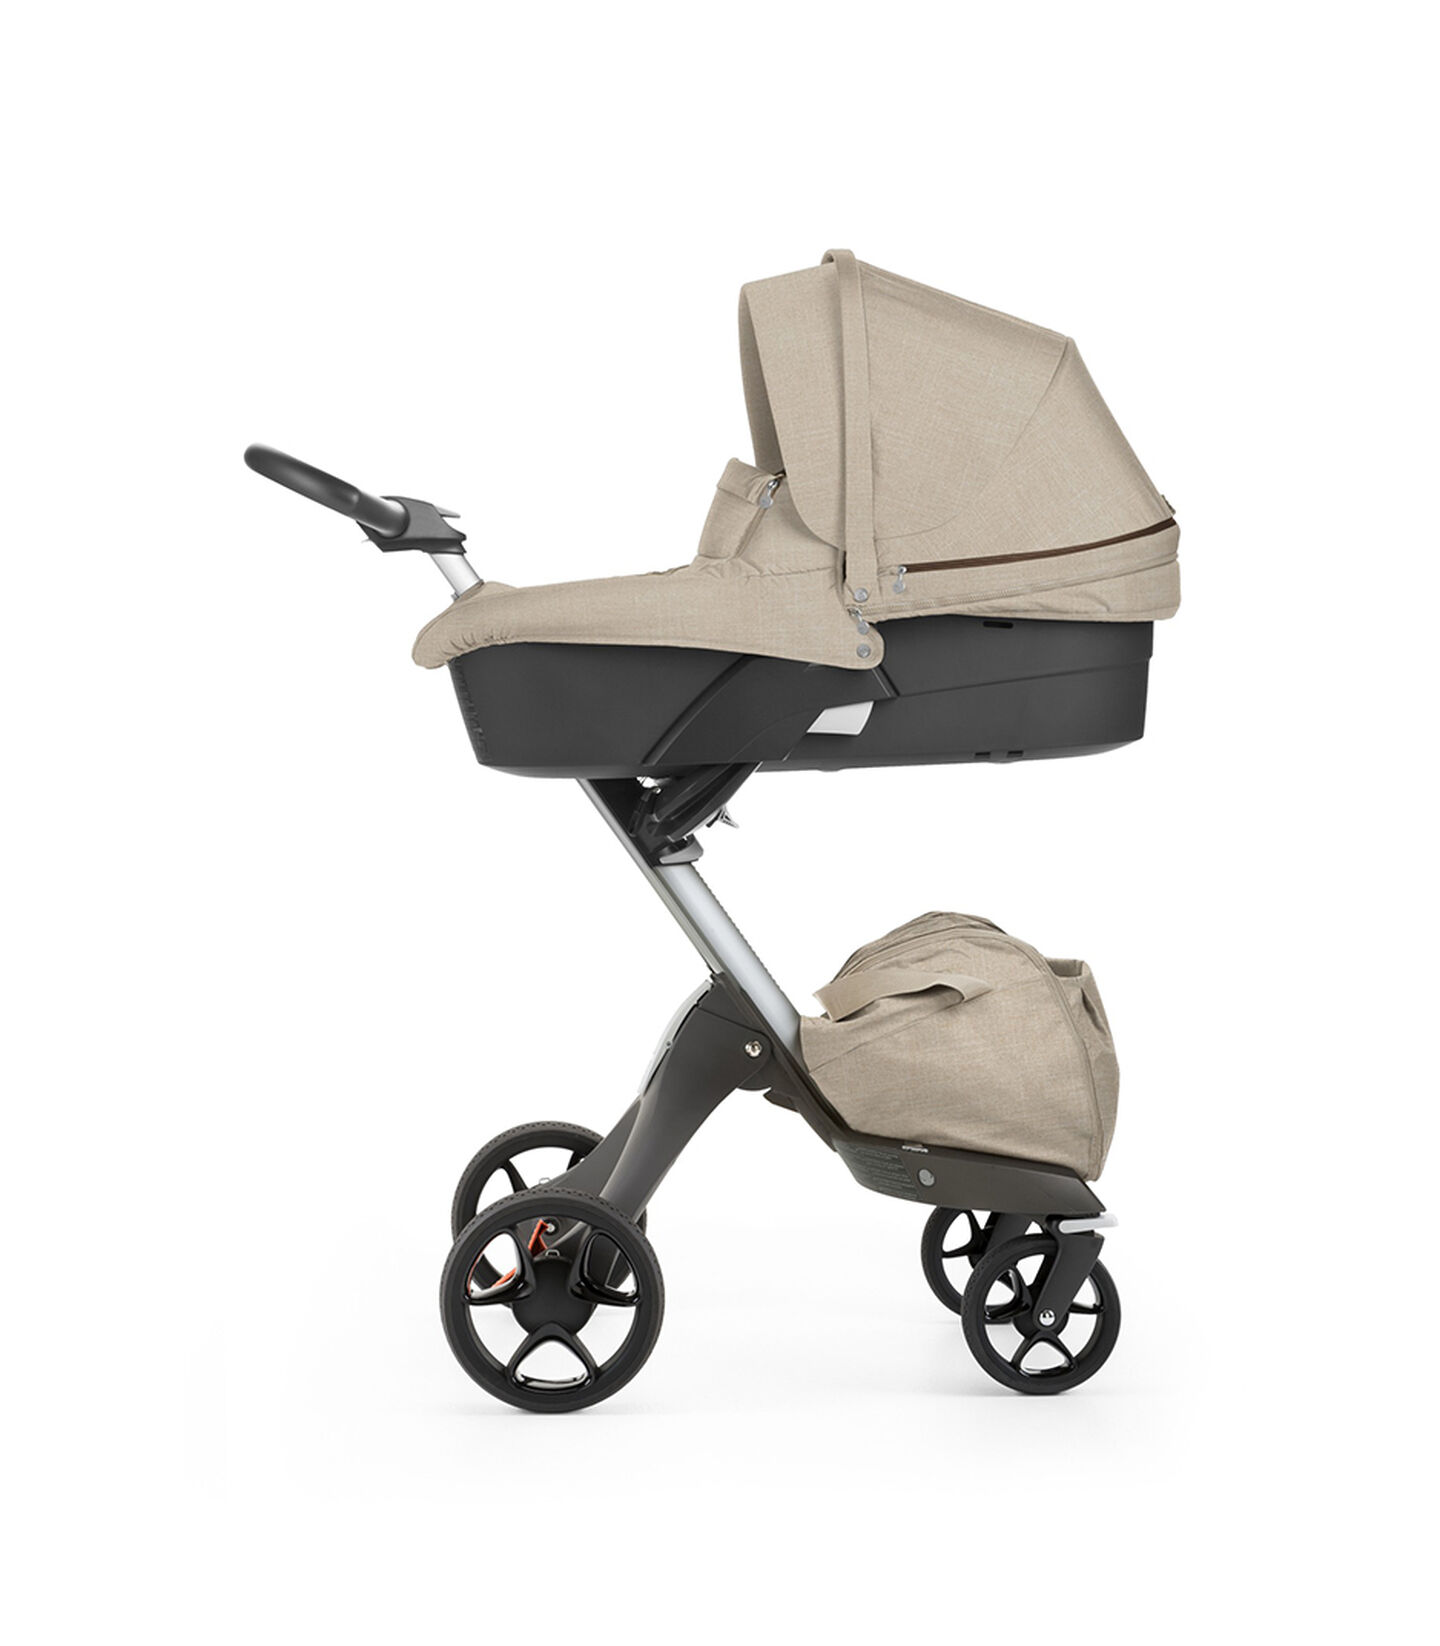 Stokke® Xplory® with Carry Cot, Beige Melange. New wheels 2016.